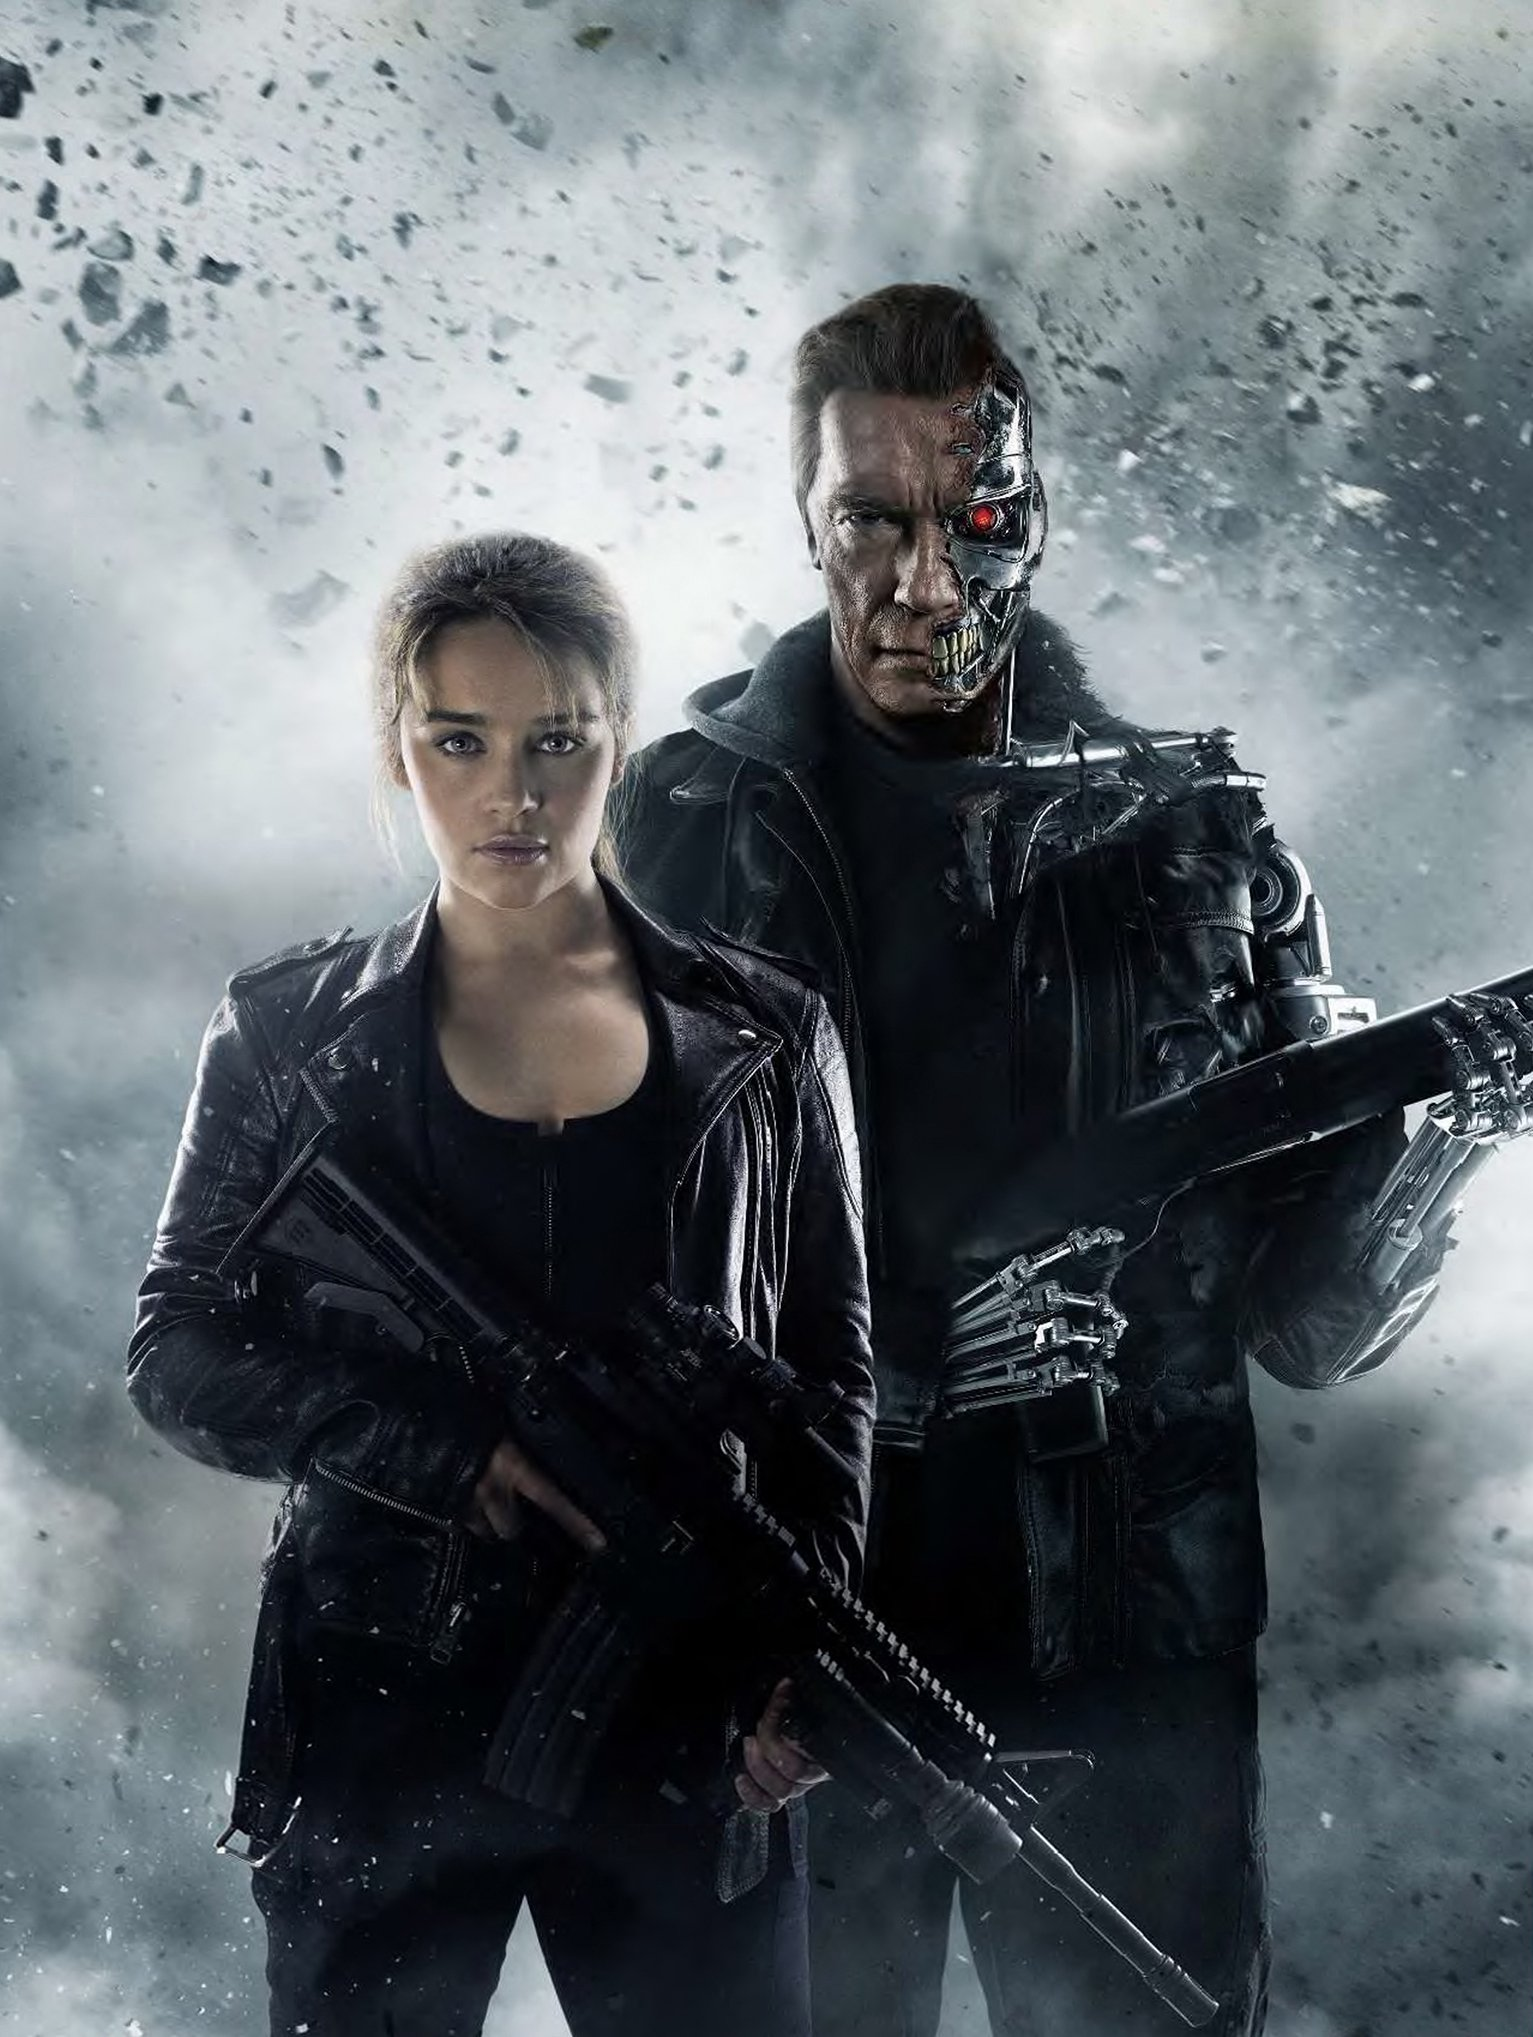 Sarah Connor and Arnie - HeadStuff.org